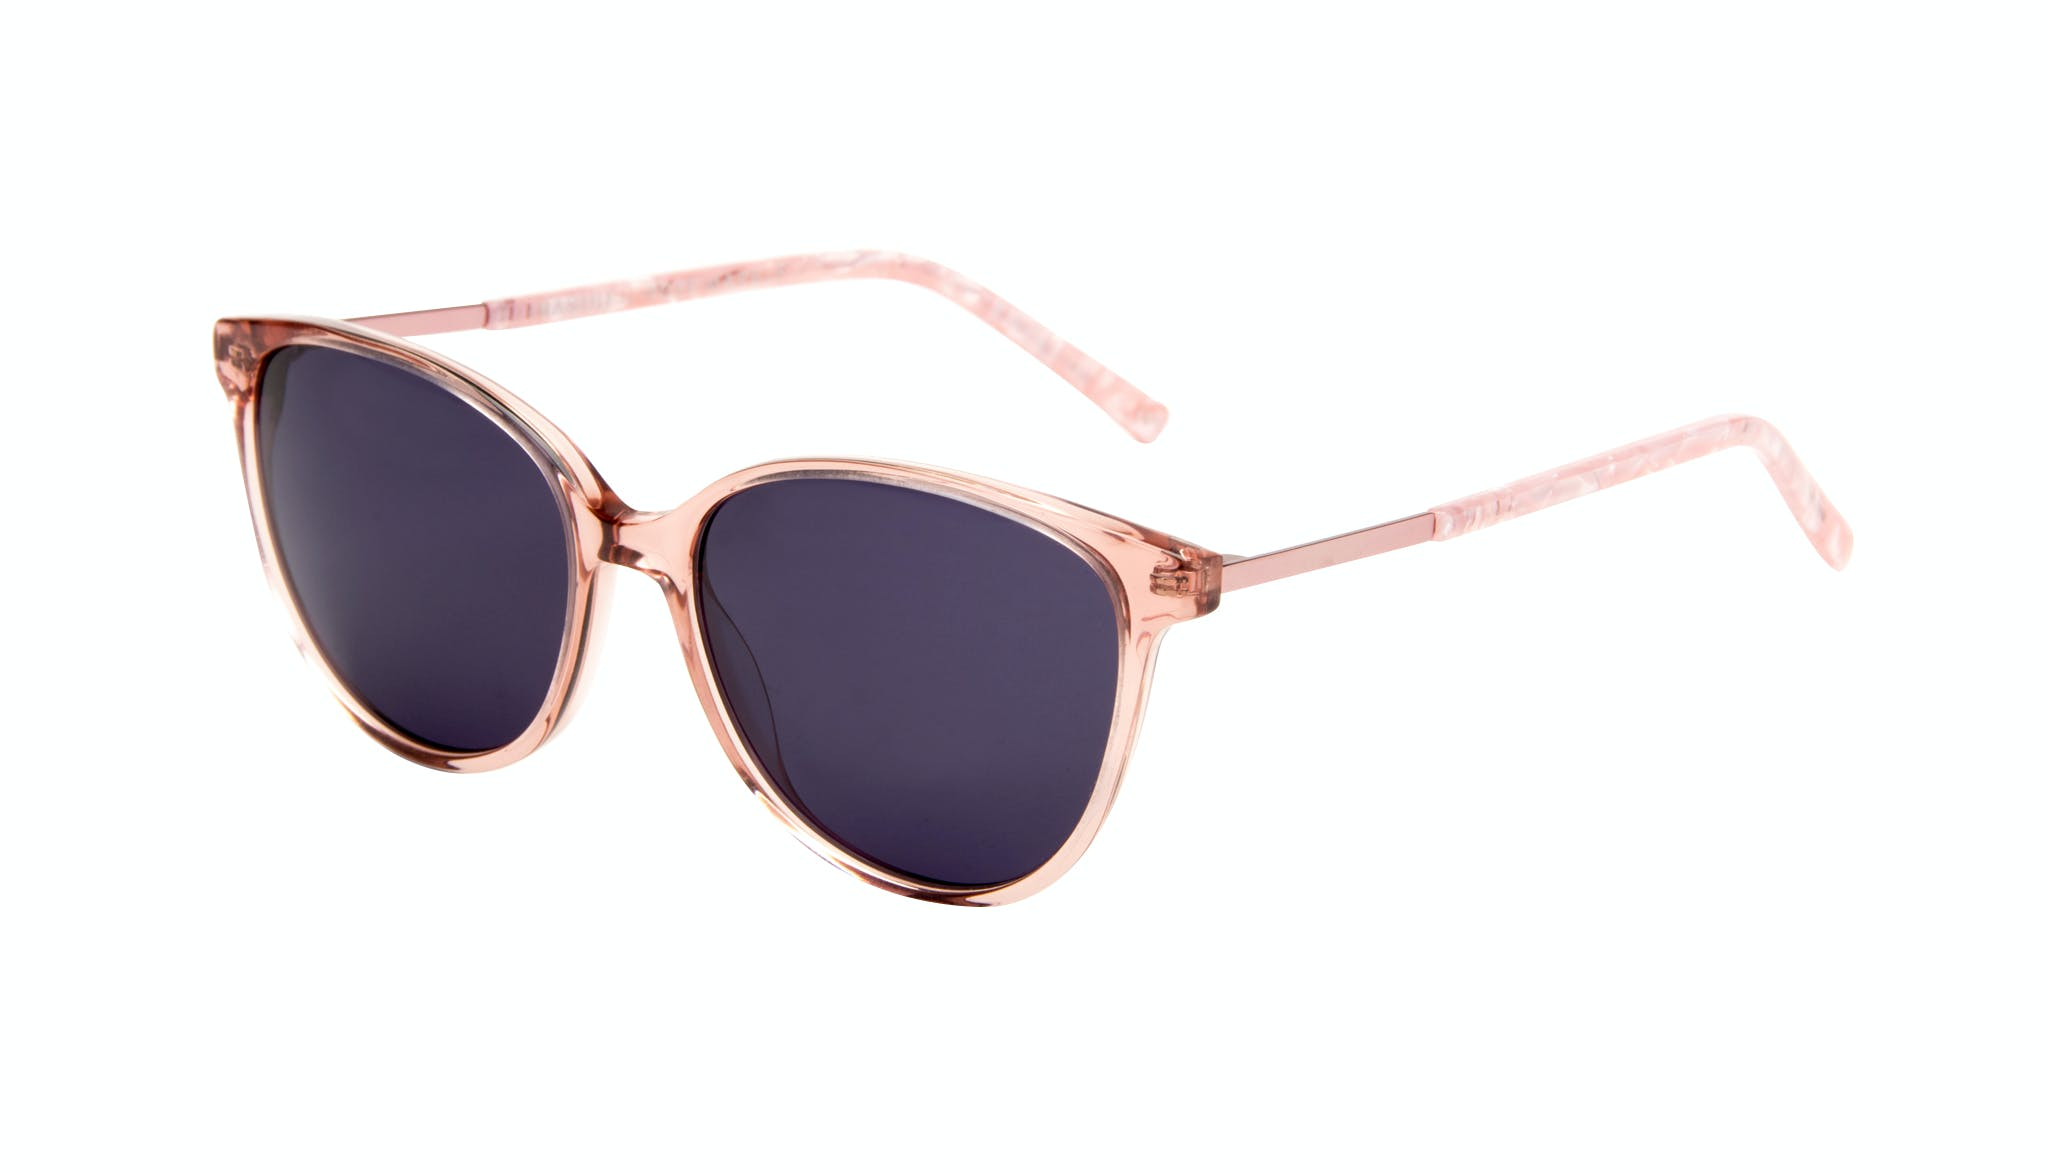 Affordable Fashion Glasses Cat Eye Sunglasses Women Imagine II Rose Marble Tilt